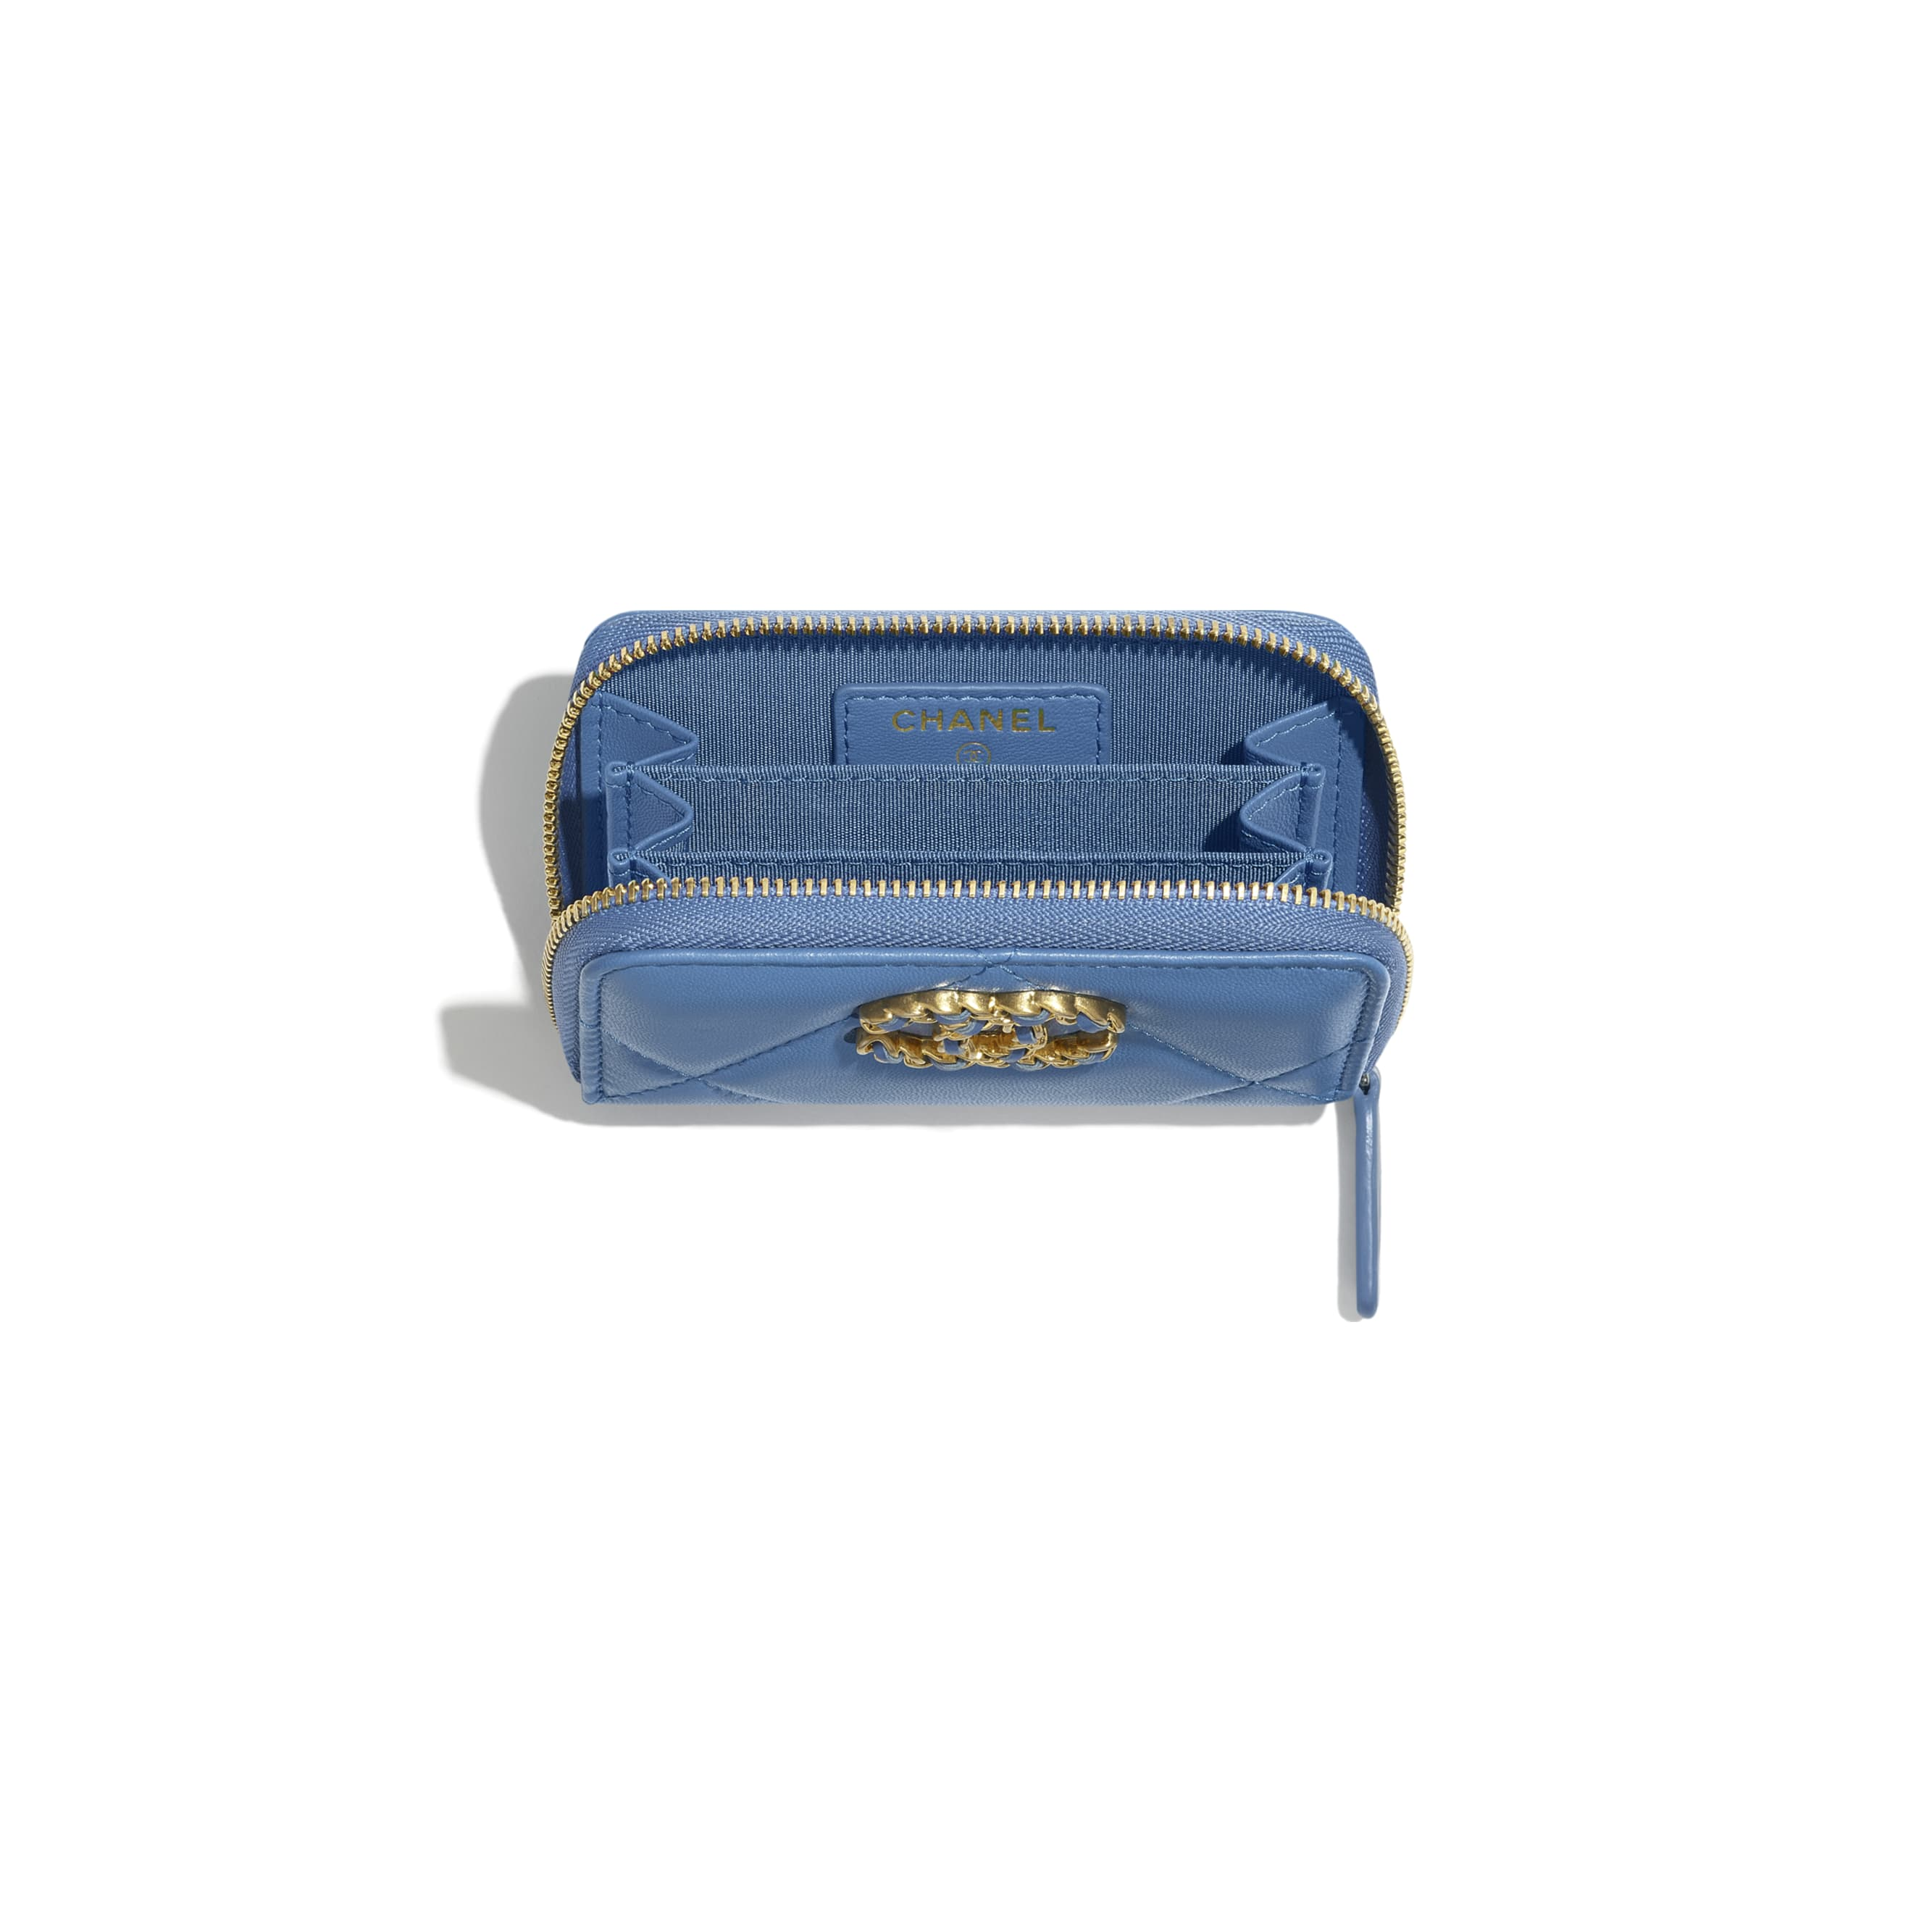 CHANEL 19 Zipped Coin Purse - Blue - Lambskin, Gold-Tone, Silver-Tone & Ruthenium-Finish Metal - CHANEL - Other view - see standard sized version